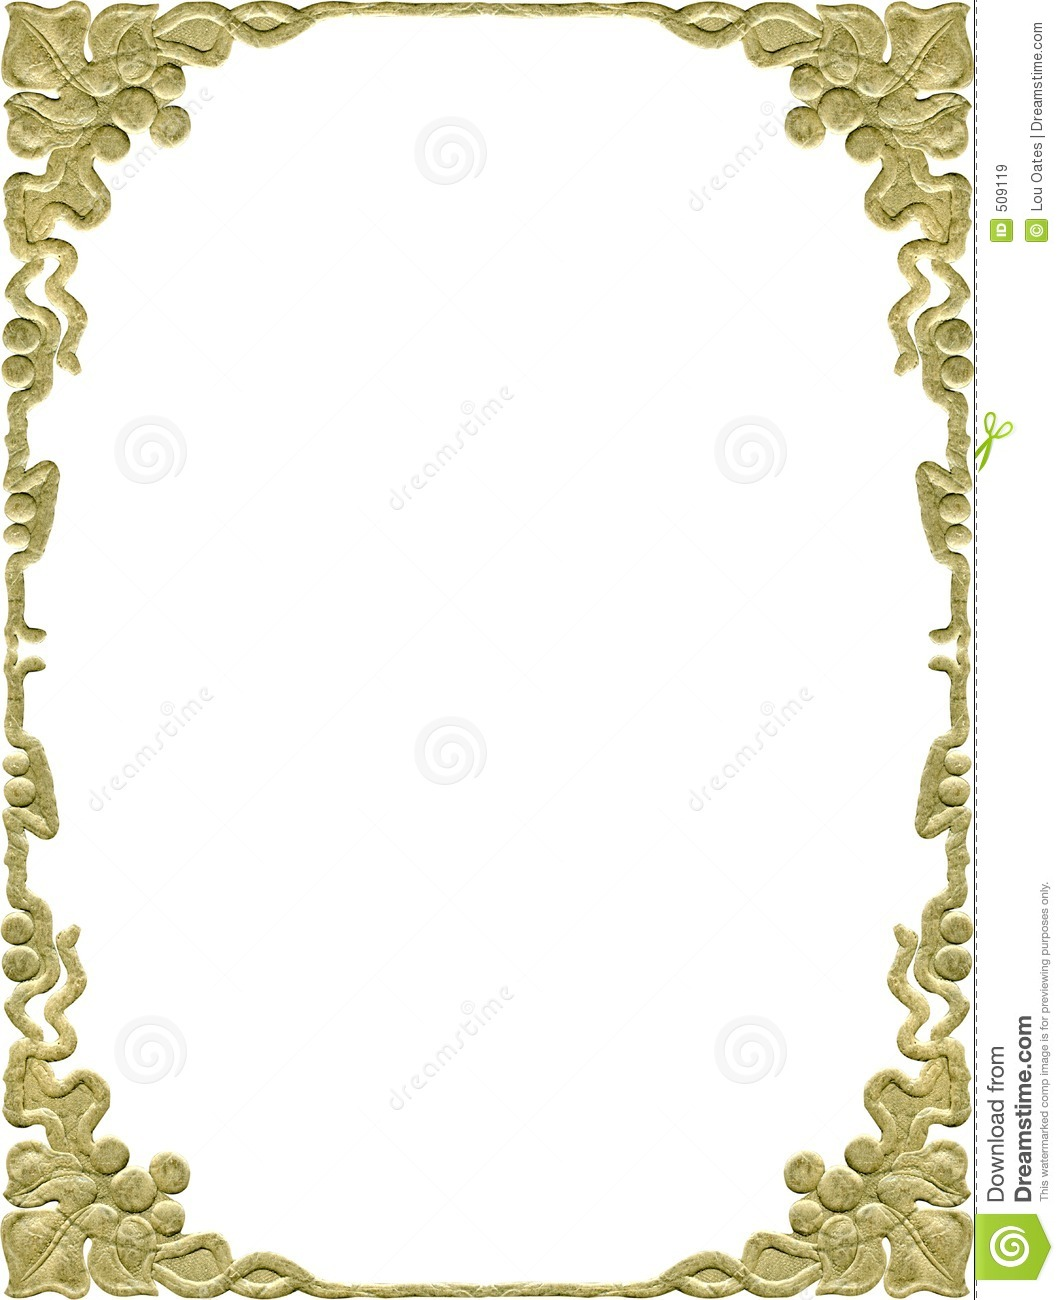 antique frame border png. 11 Gold Vintage Border Designs Images Frame Design Jeuxipadfo Choice Antique Png